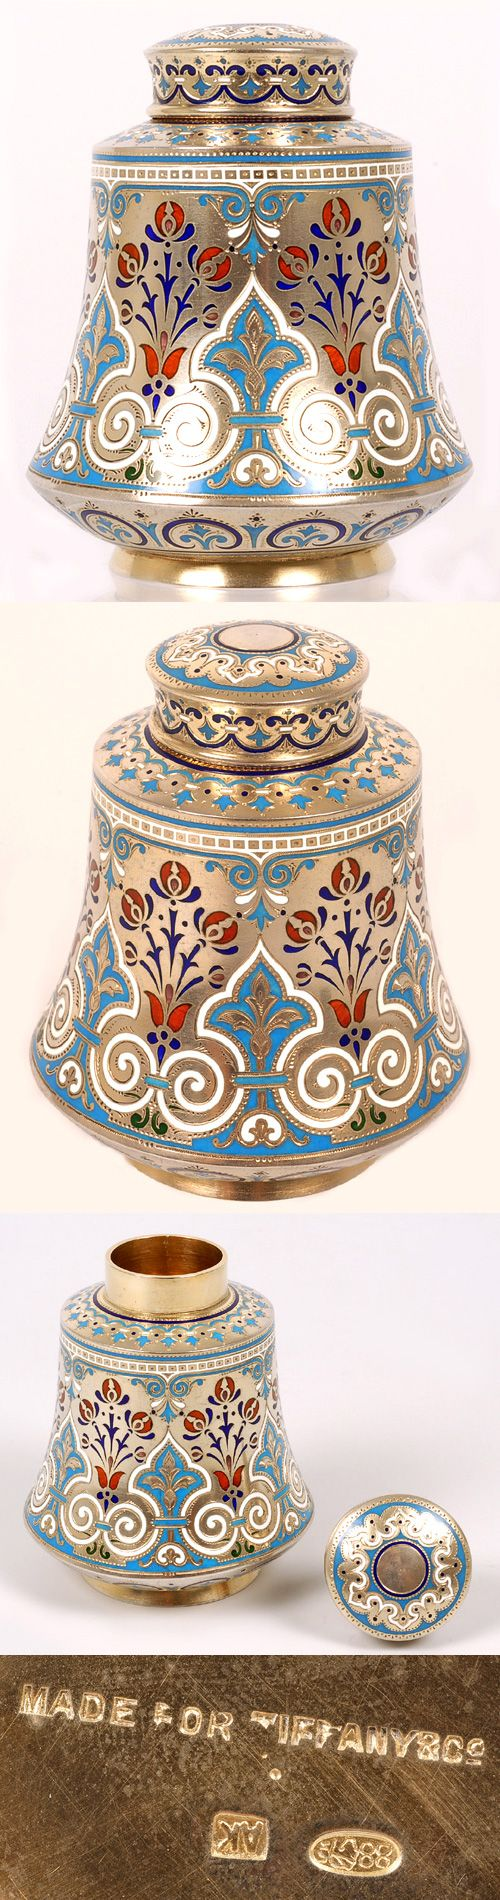 A Russian silver gilt and champleve enamel tea caddy by Antip Kuzmichev, Moscow, Circa 1896-1908. Of cylindrical shape with flaring sides, raised on a circular base, the caddy is worked in multi-color scrolling and foliate motifs using predominately turquoise, white, red and cobalt enamel. The slightly domed lid is similarly decorated.